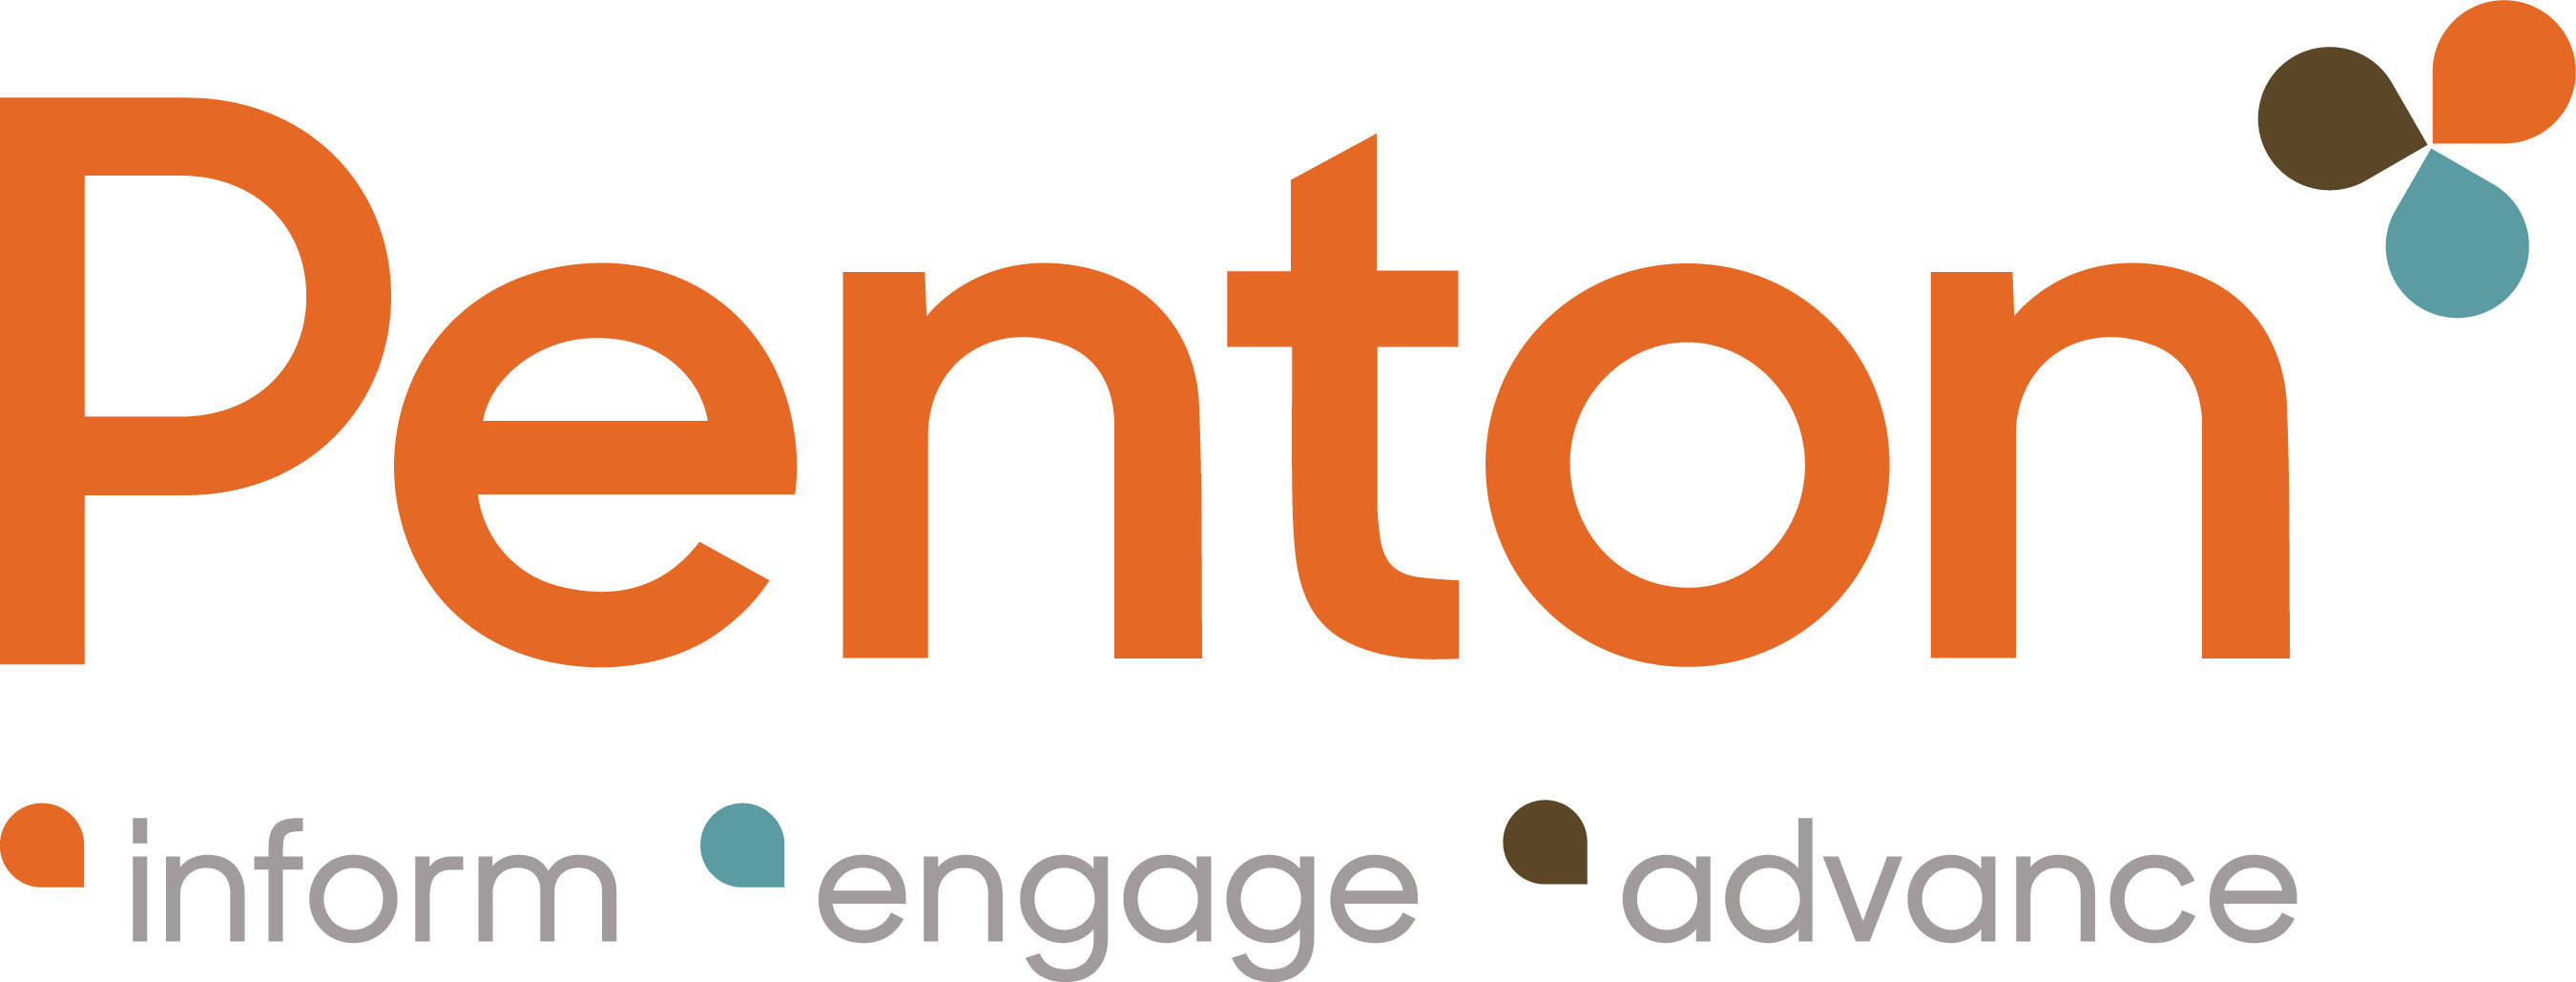 Josh Linkner to keynote at Penton Technology's Channel Directions Live event